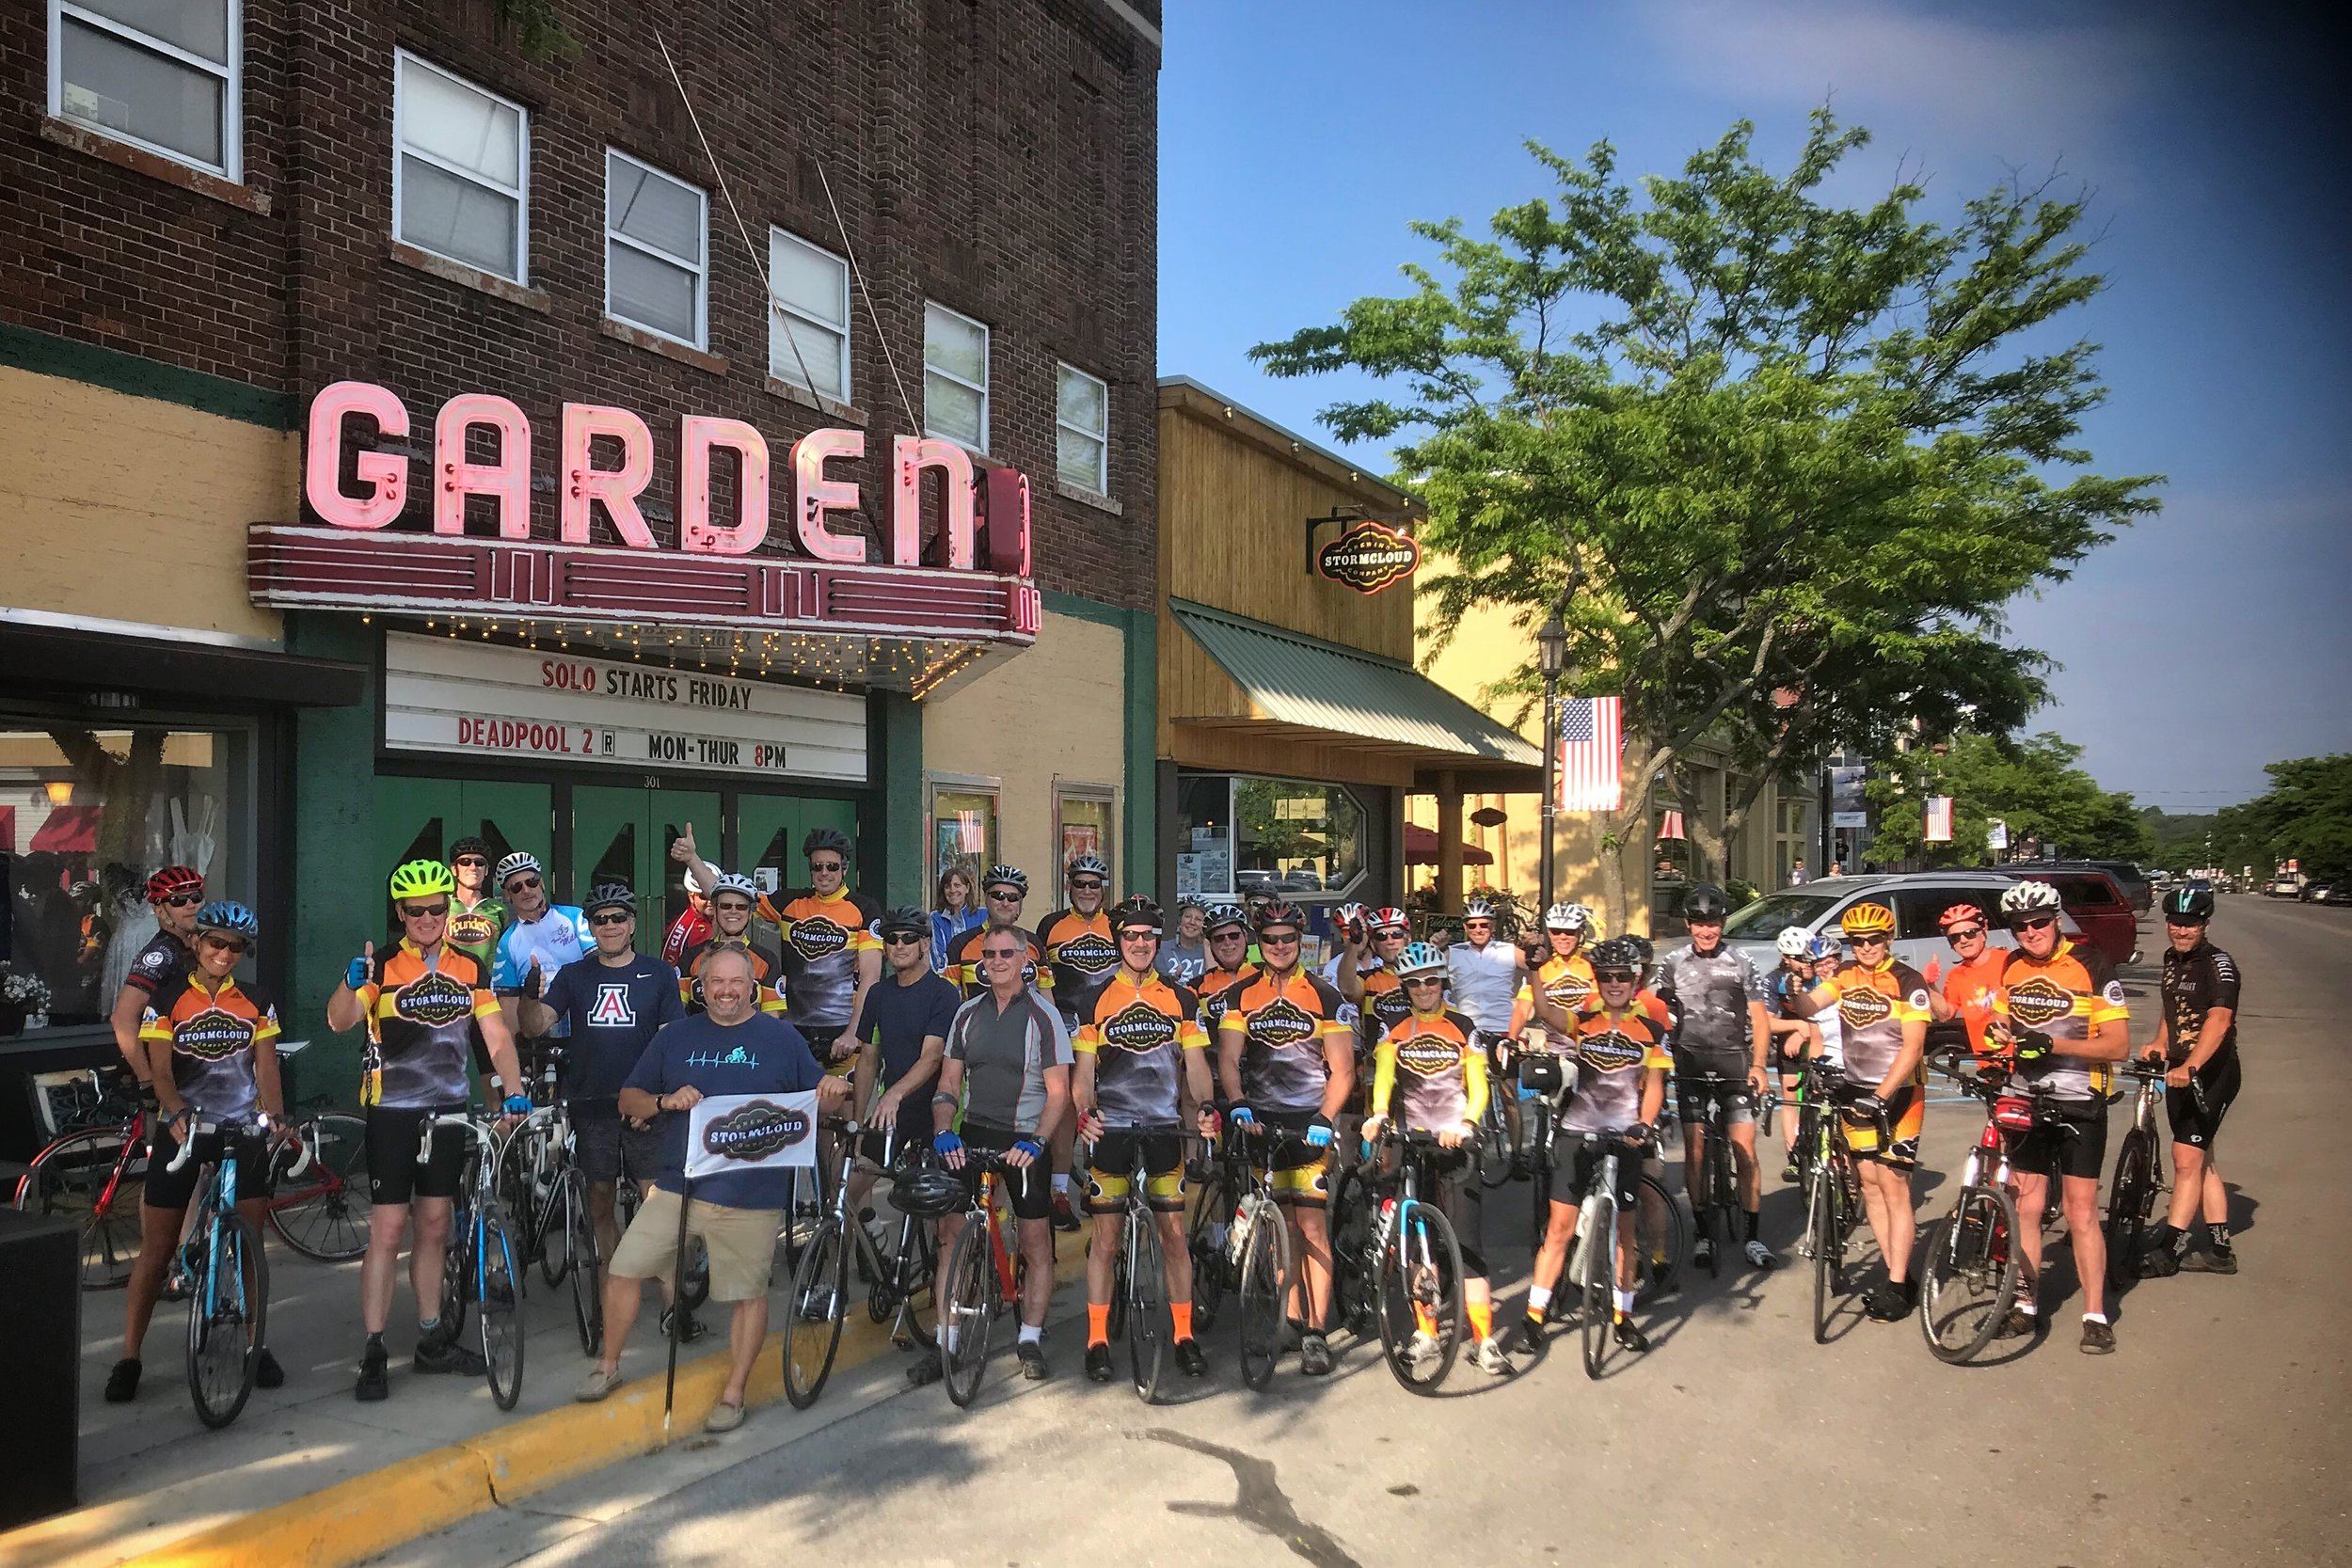 storm riders wed june 27 2018.jpg